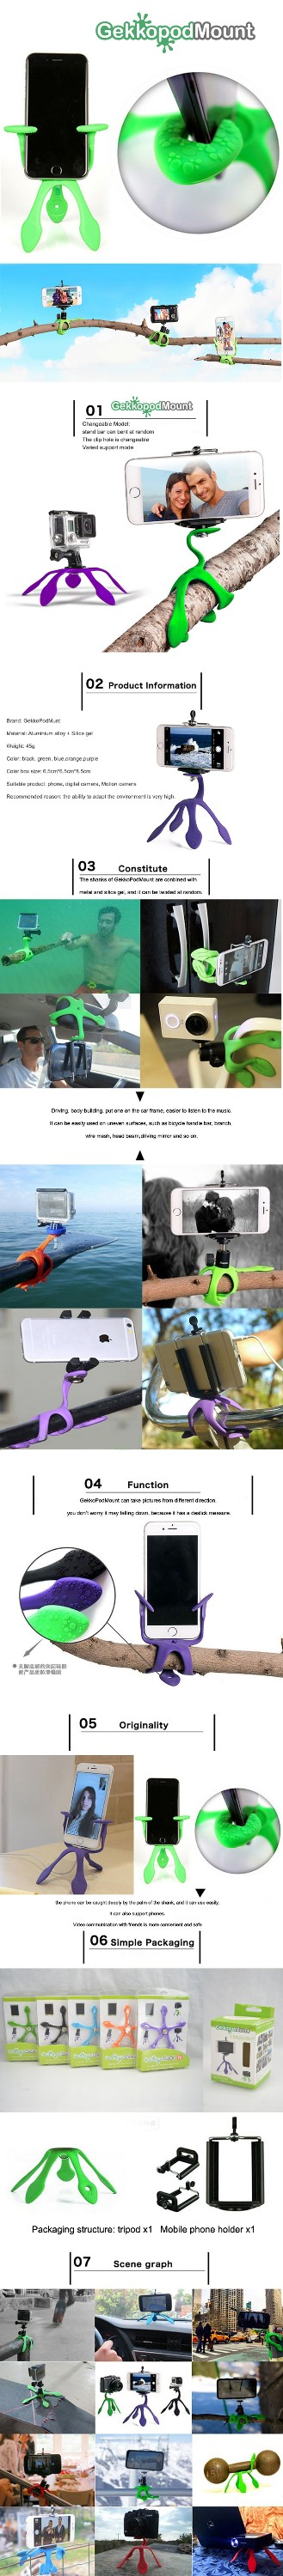 Smartphone Mount - Portable and Extremely Flexible miggo tripod that can be Set, Wrapped Hung and Clung Practically Anywhere